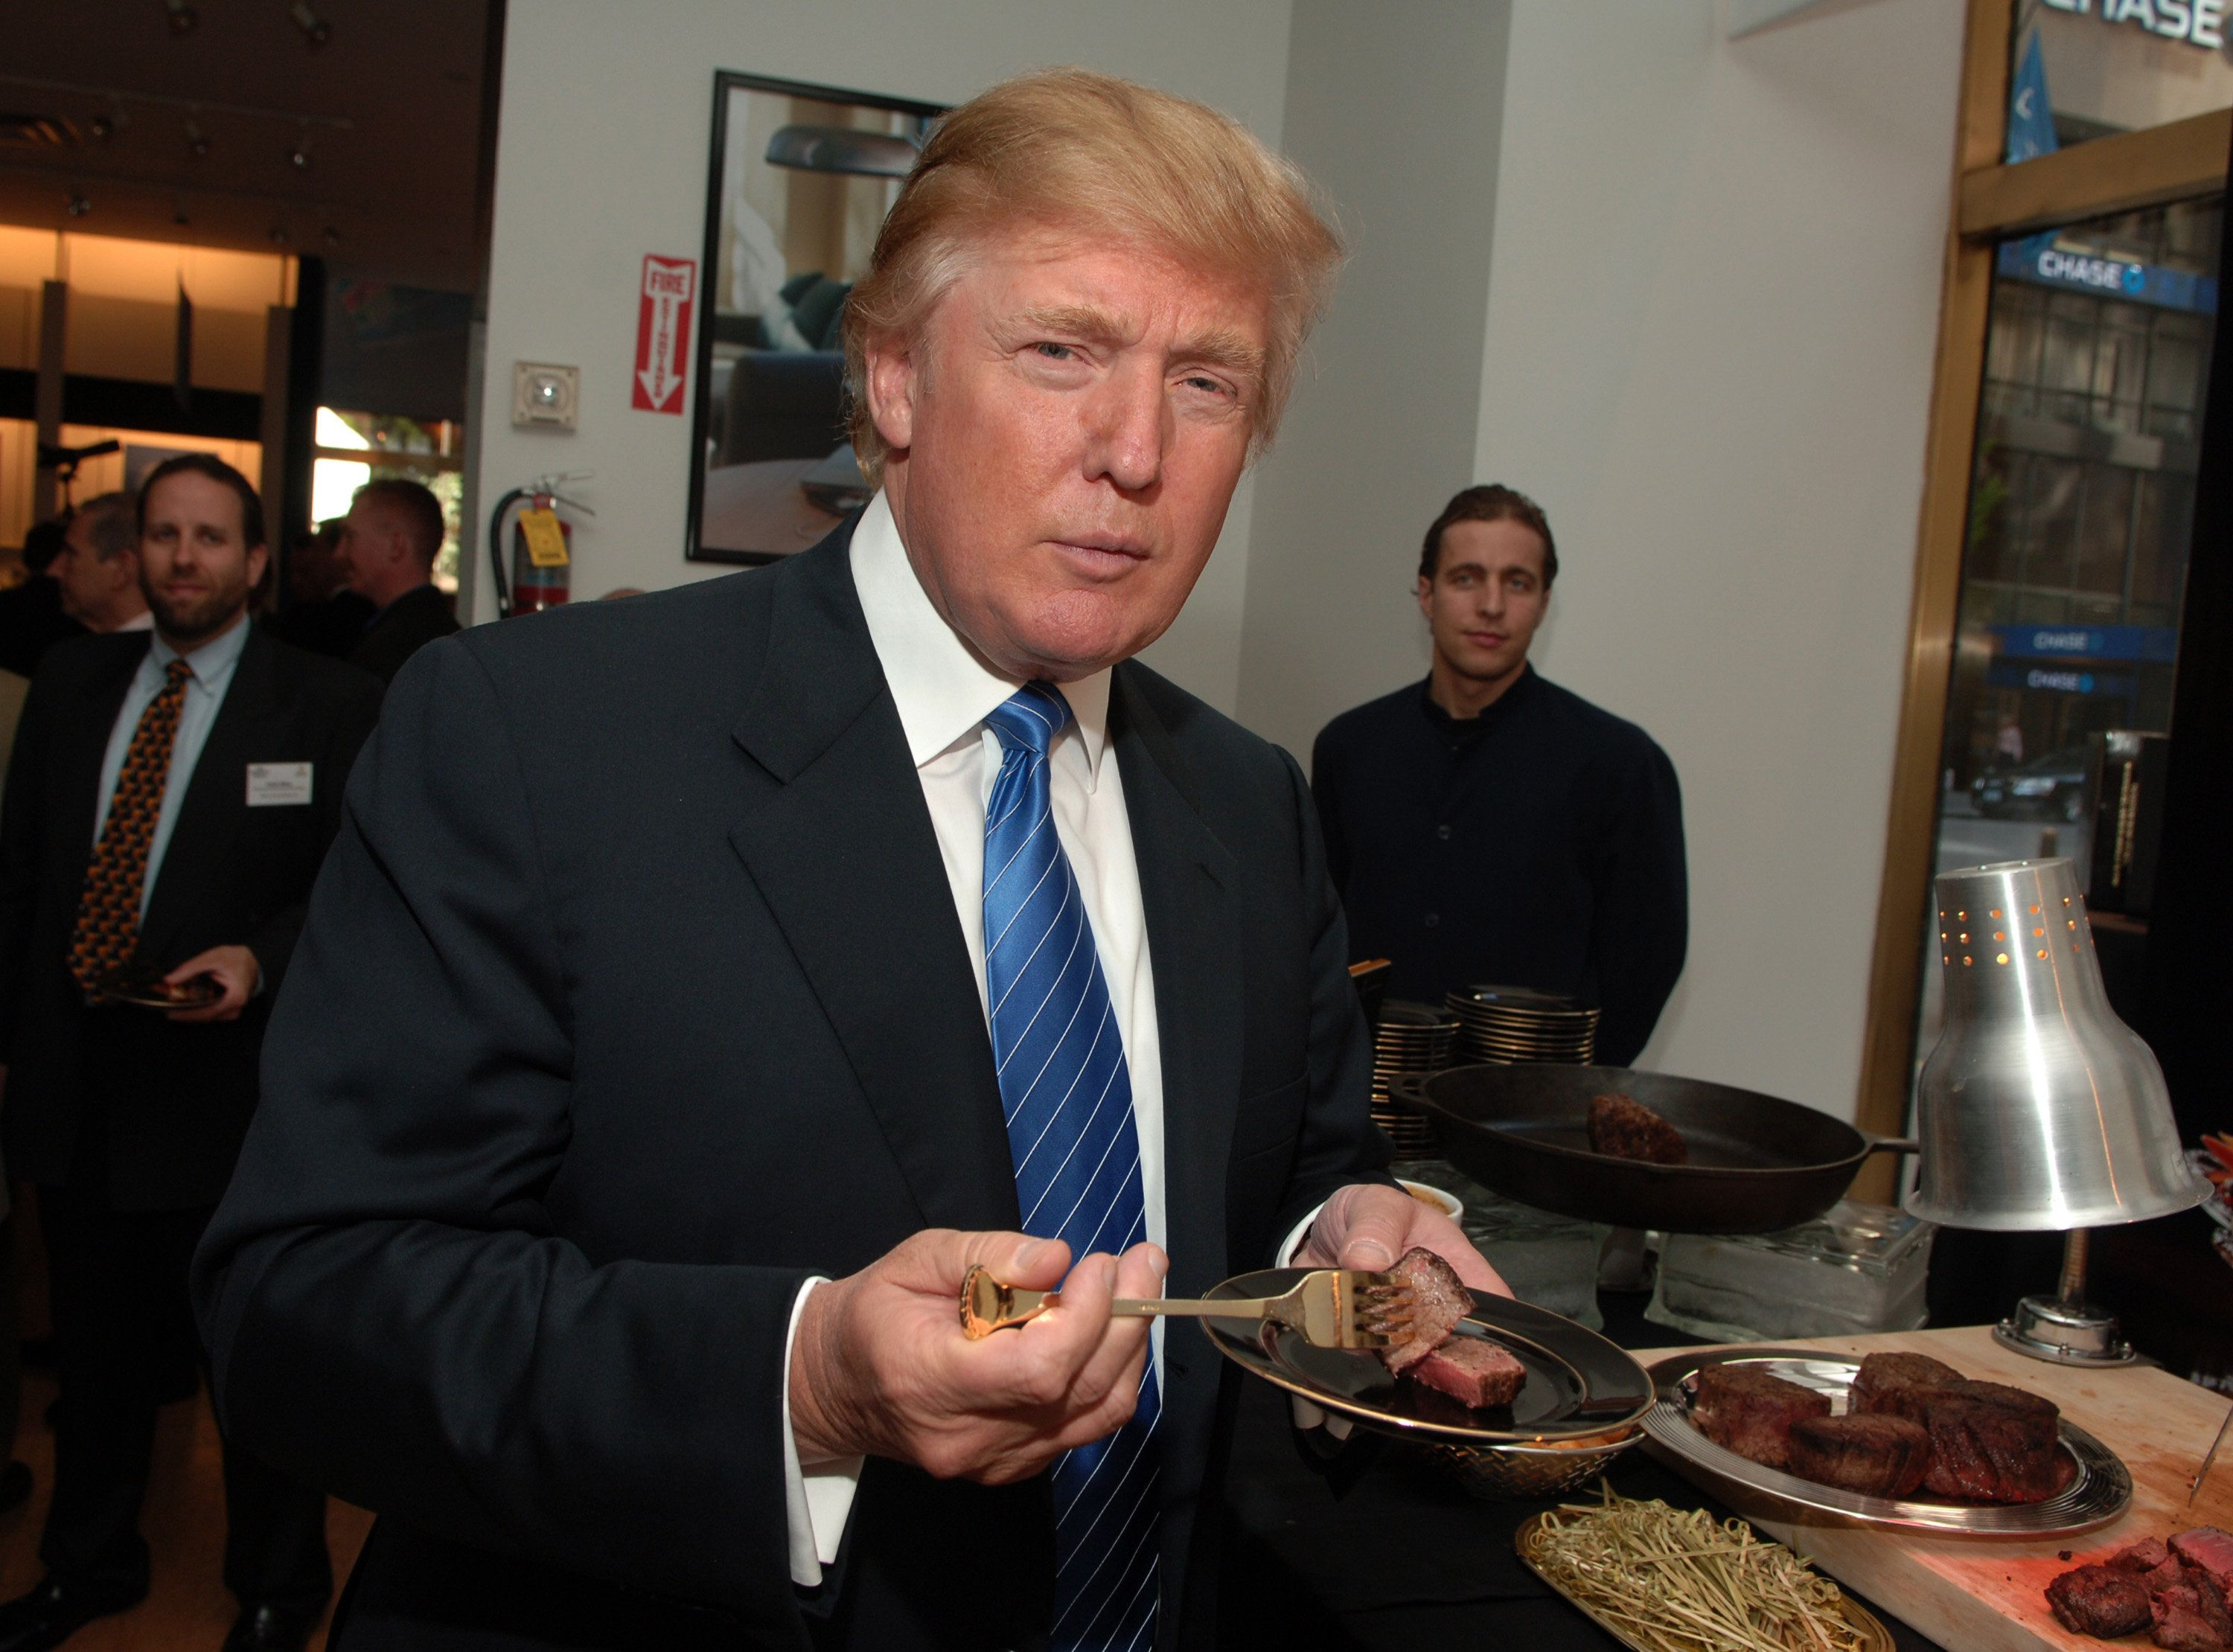 Trump is a big fan of McDonald's, steak, pizza and chips.